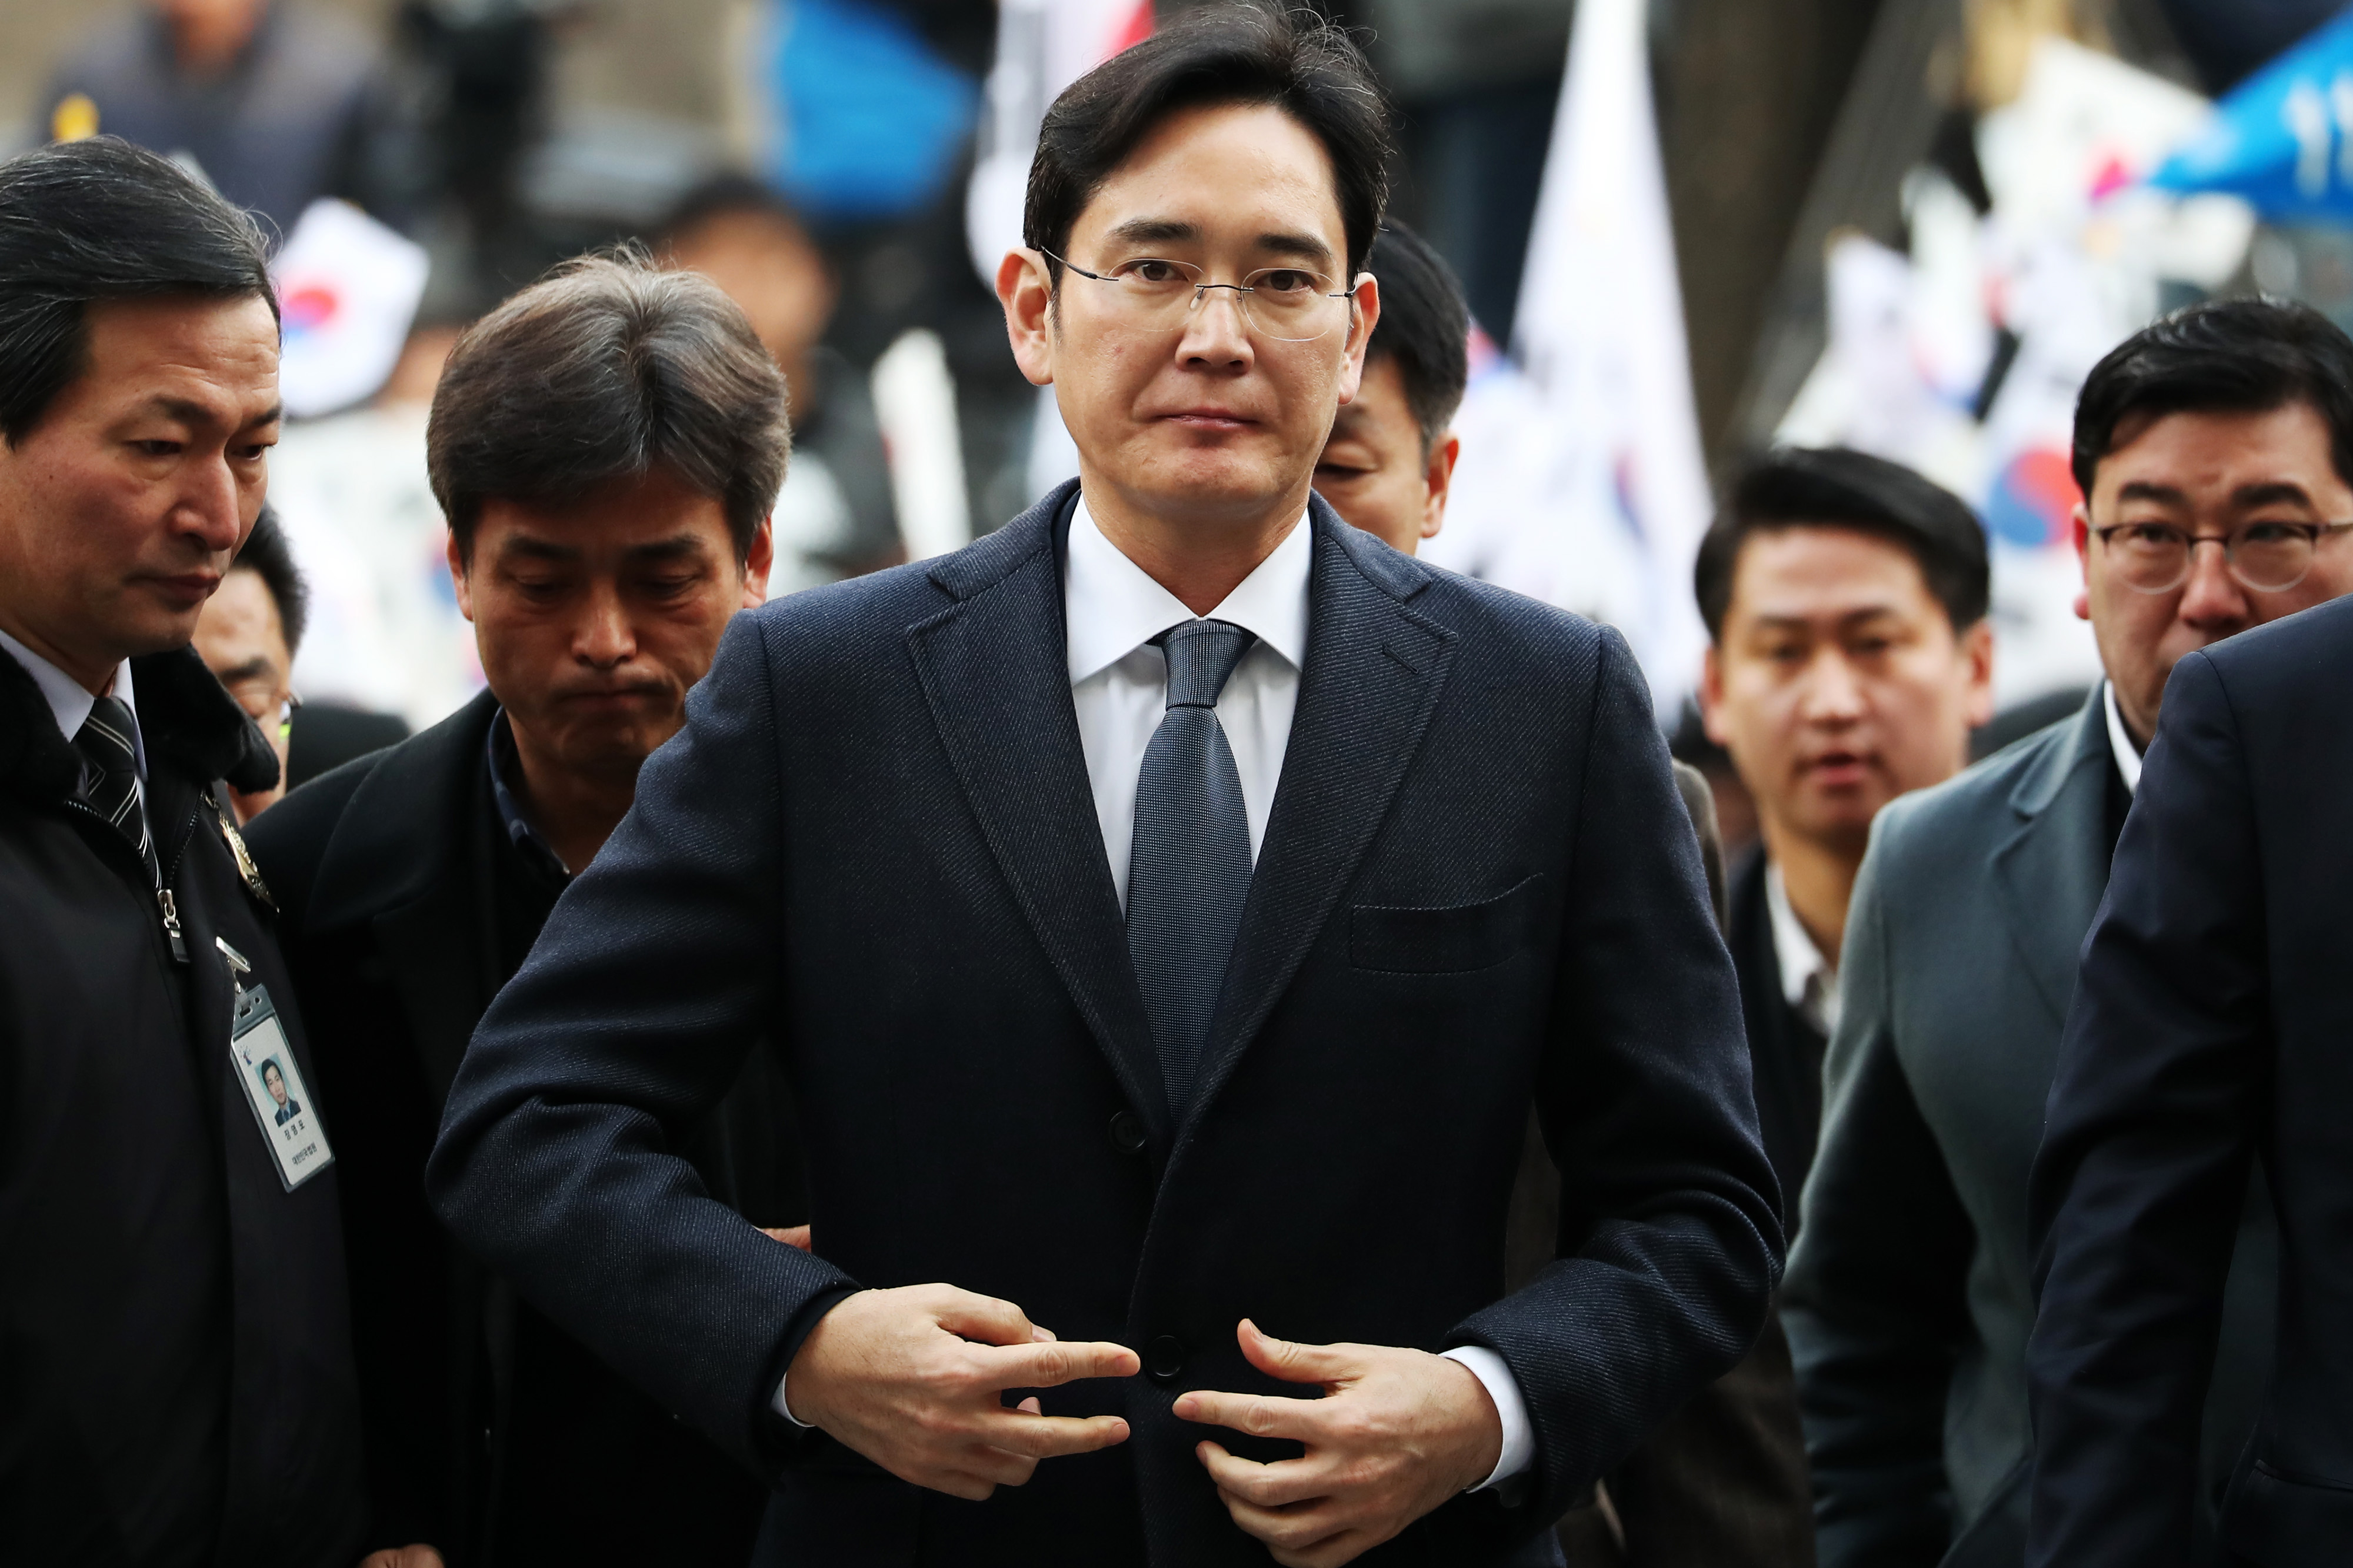 Samsung Vice Chairman Jay Y. Lee Appears In Court Again To Face Arrest Warrant In Graft Probe